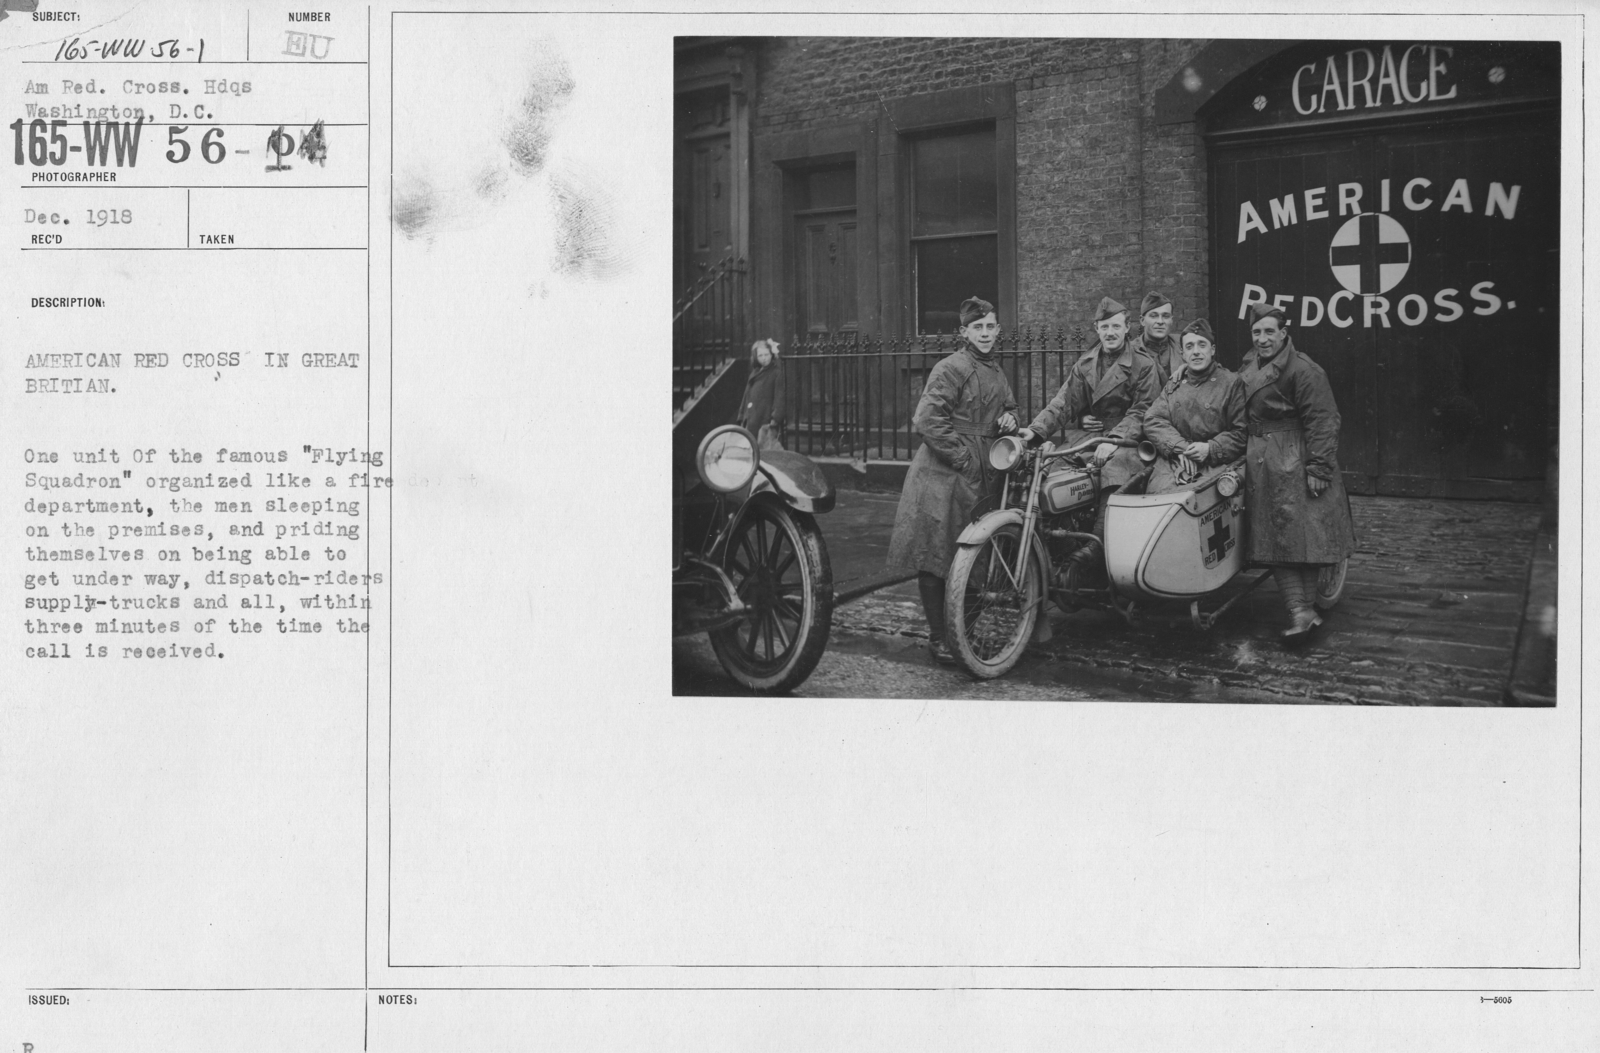 """American Red Cross - Groups - American Red Cross in Great Britian. One unit of the famous """"Flying Squadron"""" organized like a fire department, the men sleeping on the premises, and priding themselves on being able to get under way, dispatch-riders supply-trucks and all, within three minutes of the time the call is received"""